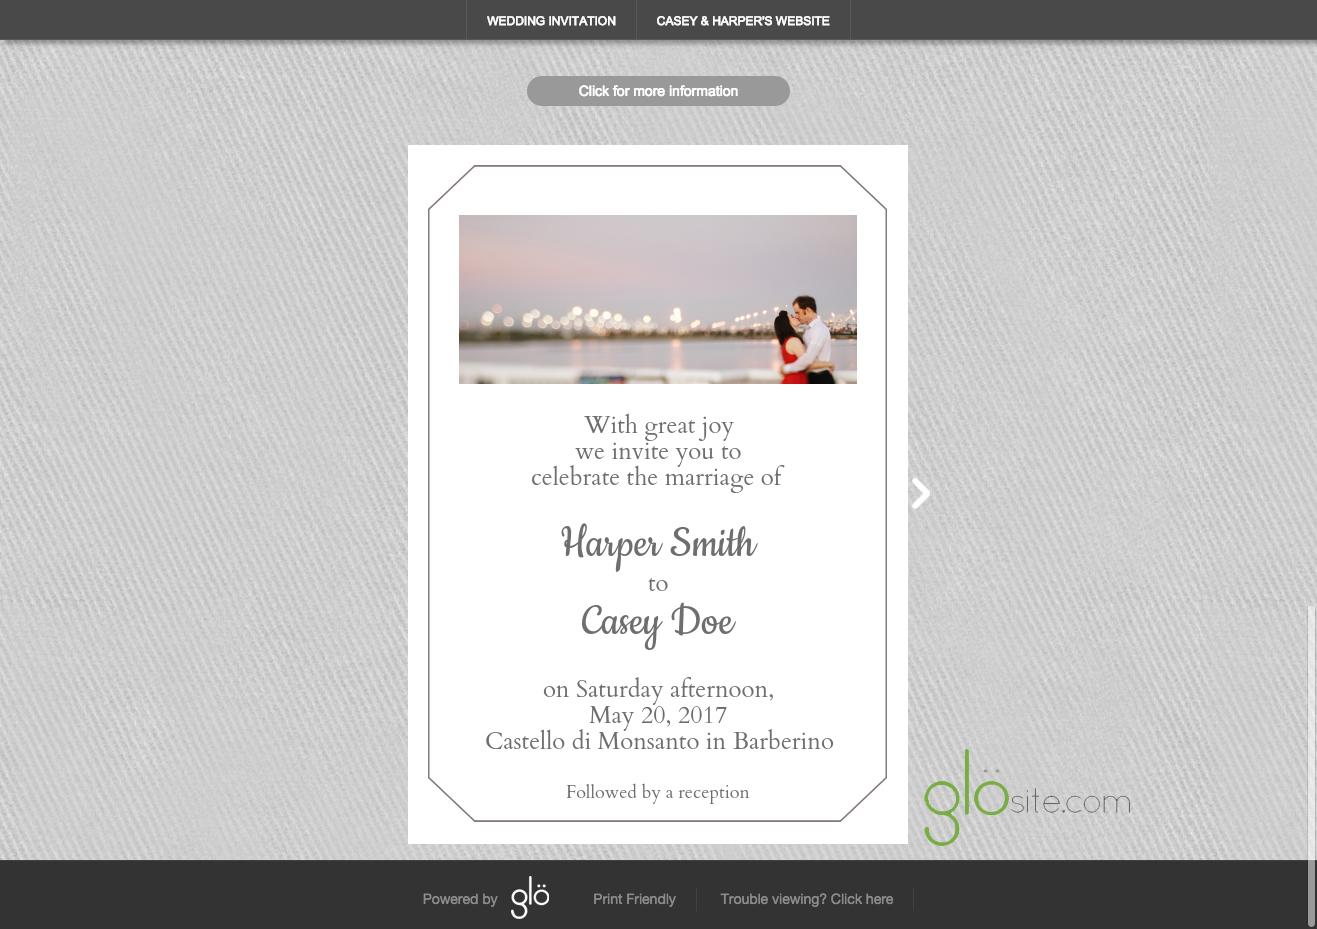 Beautiful Glosite Email Wedding Invitation Background Pattern Copy